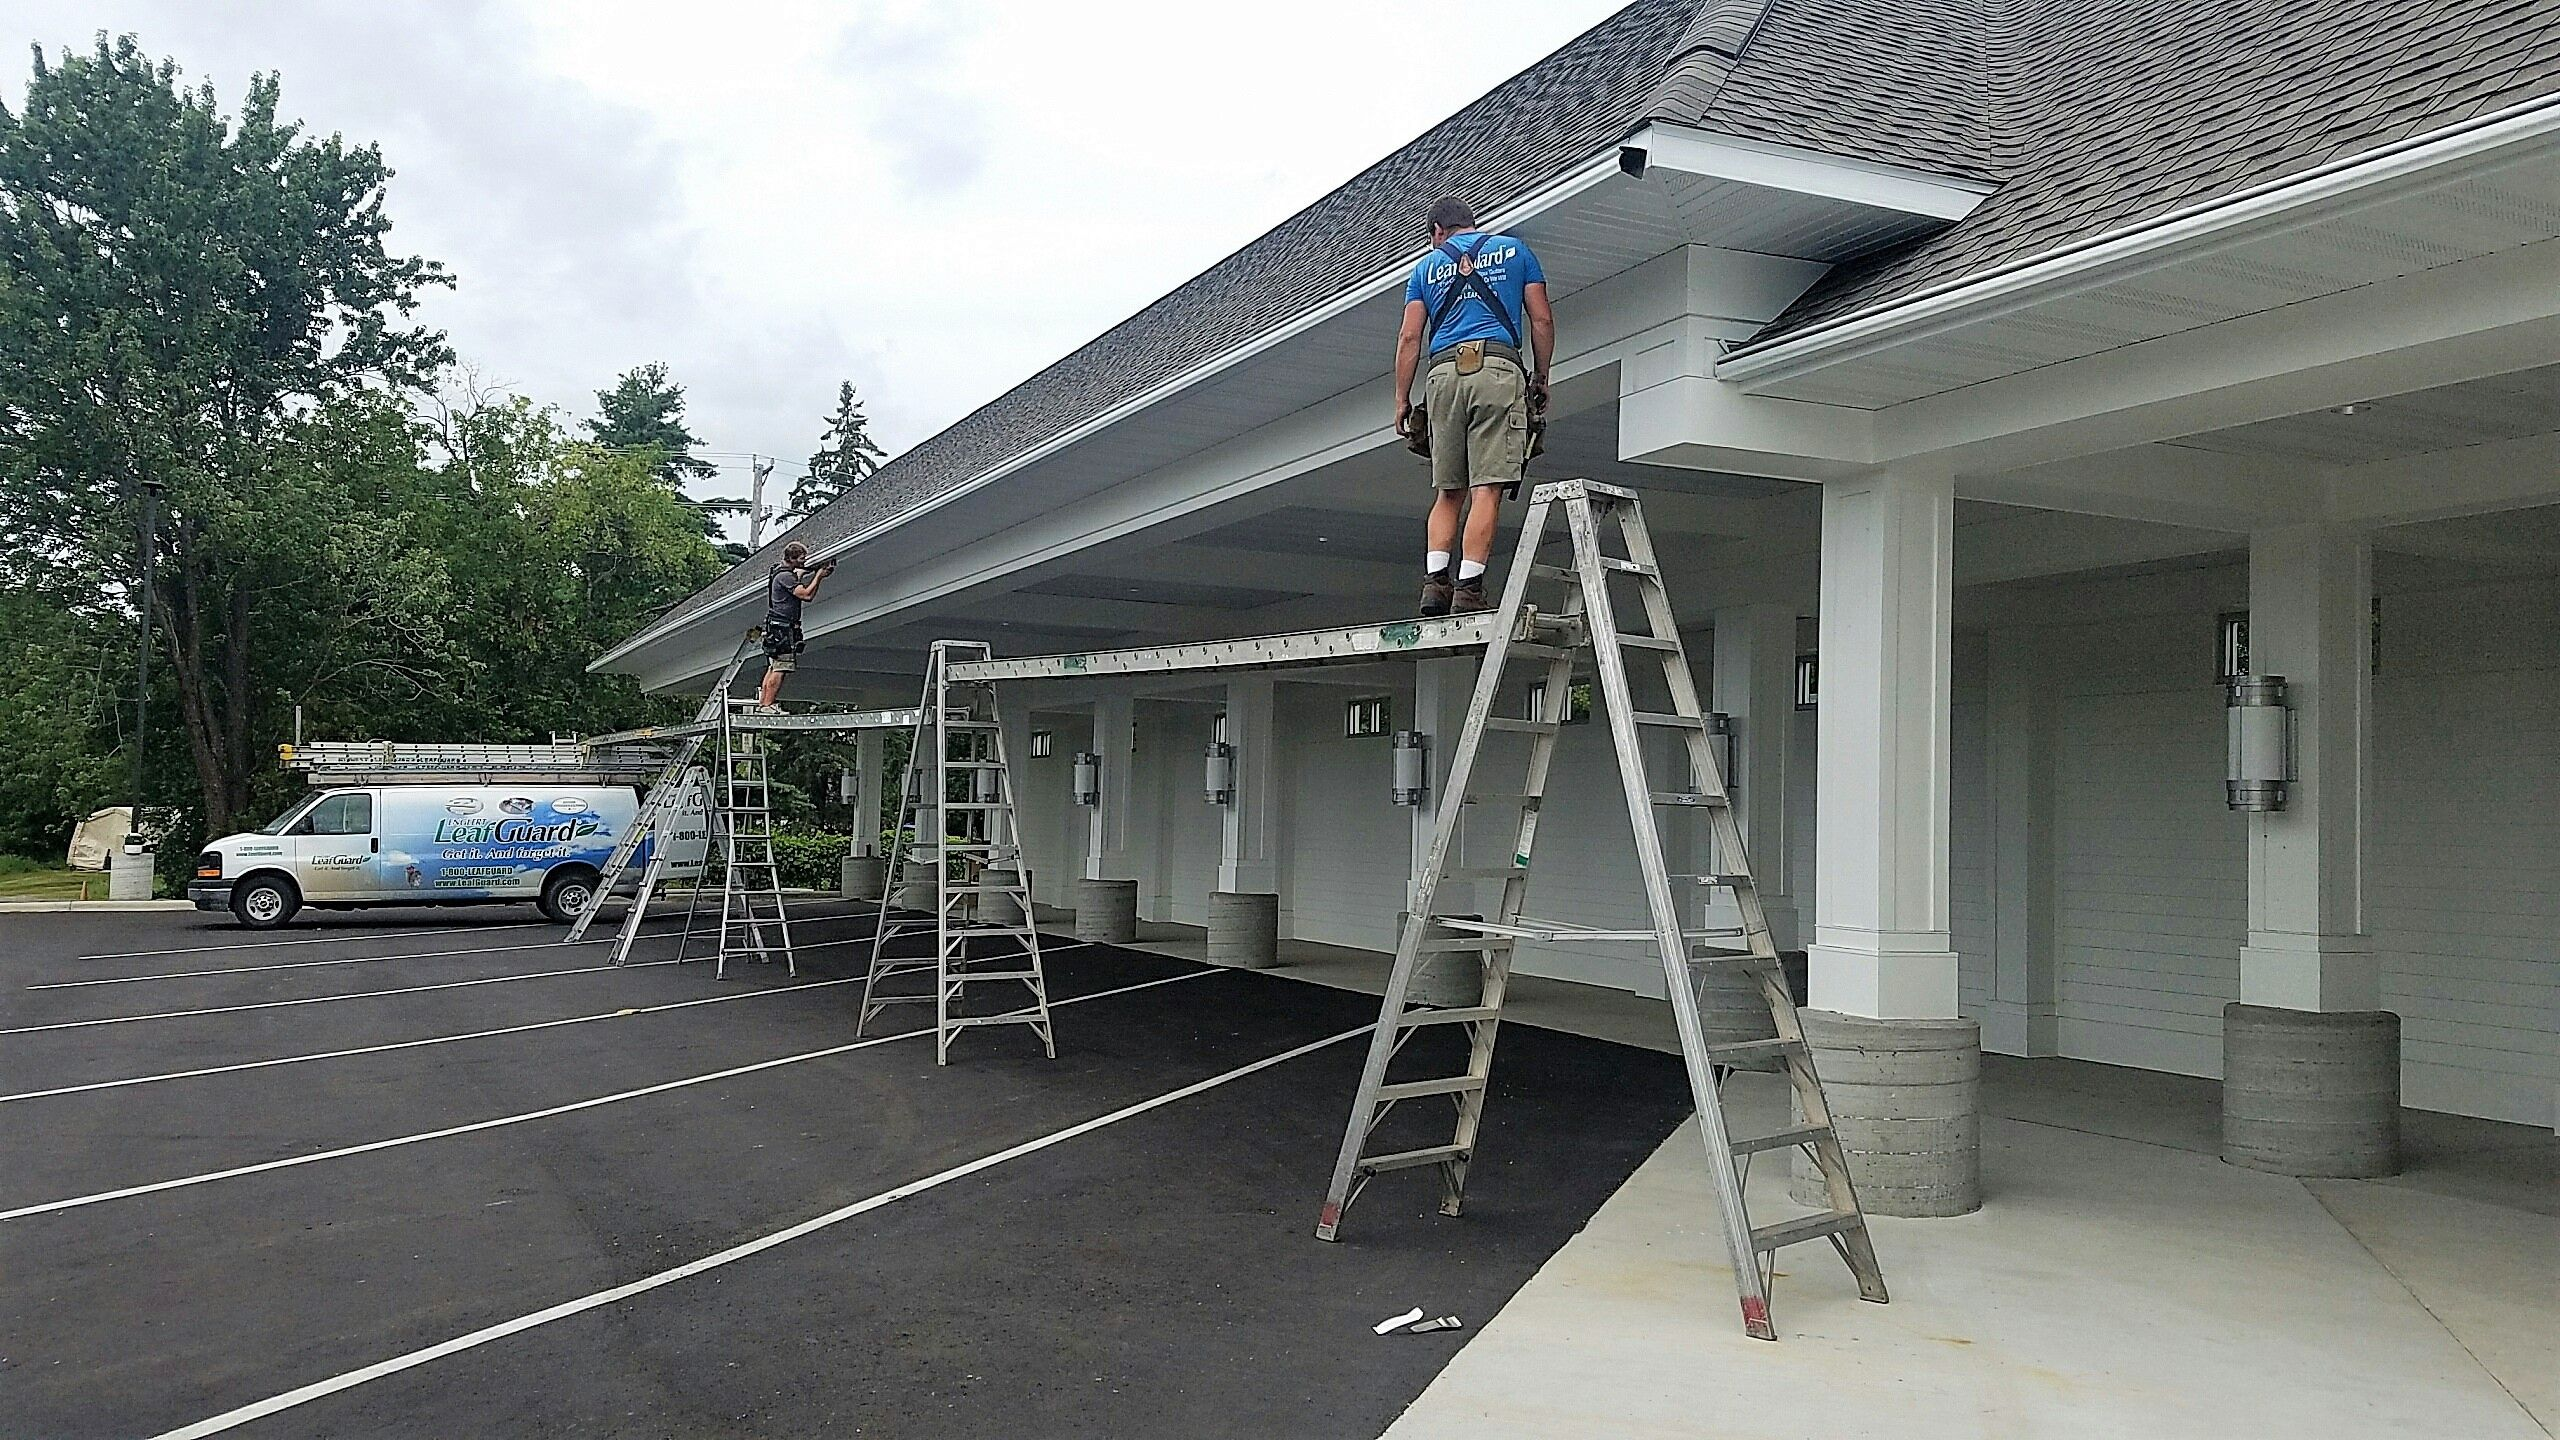 Here Our Lead Installers Jason And Travis Are Installing A Run Of Leafguard Gutters On The Executive Express Building I Seamless Gutters Gutters Installation